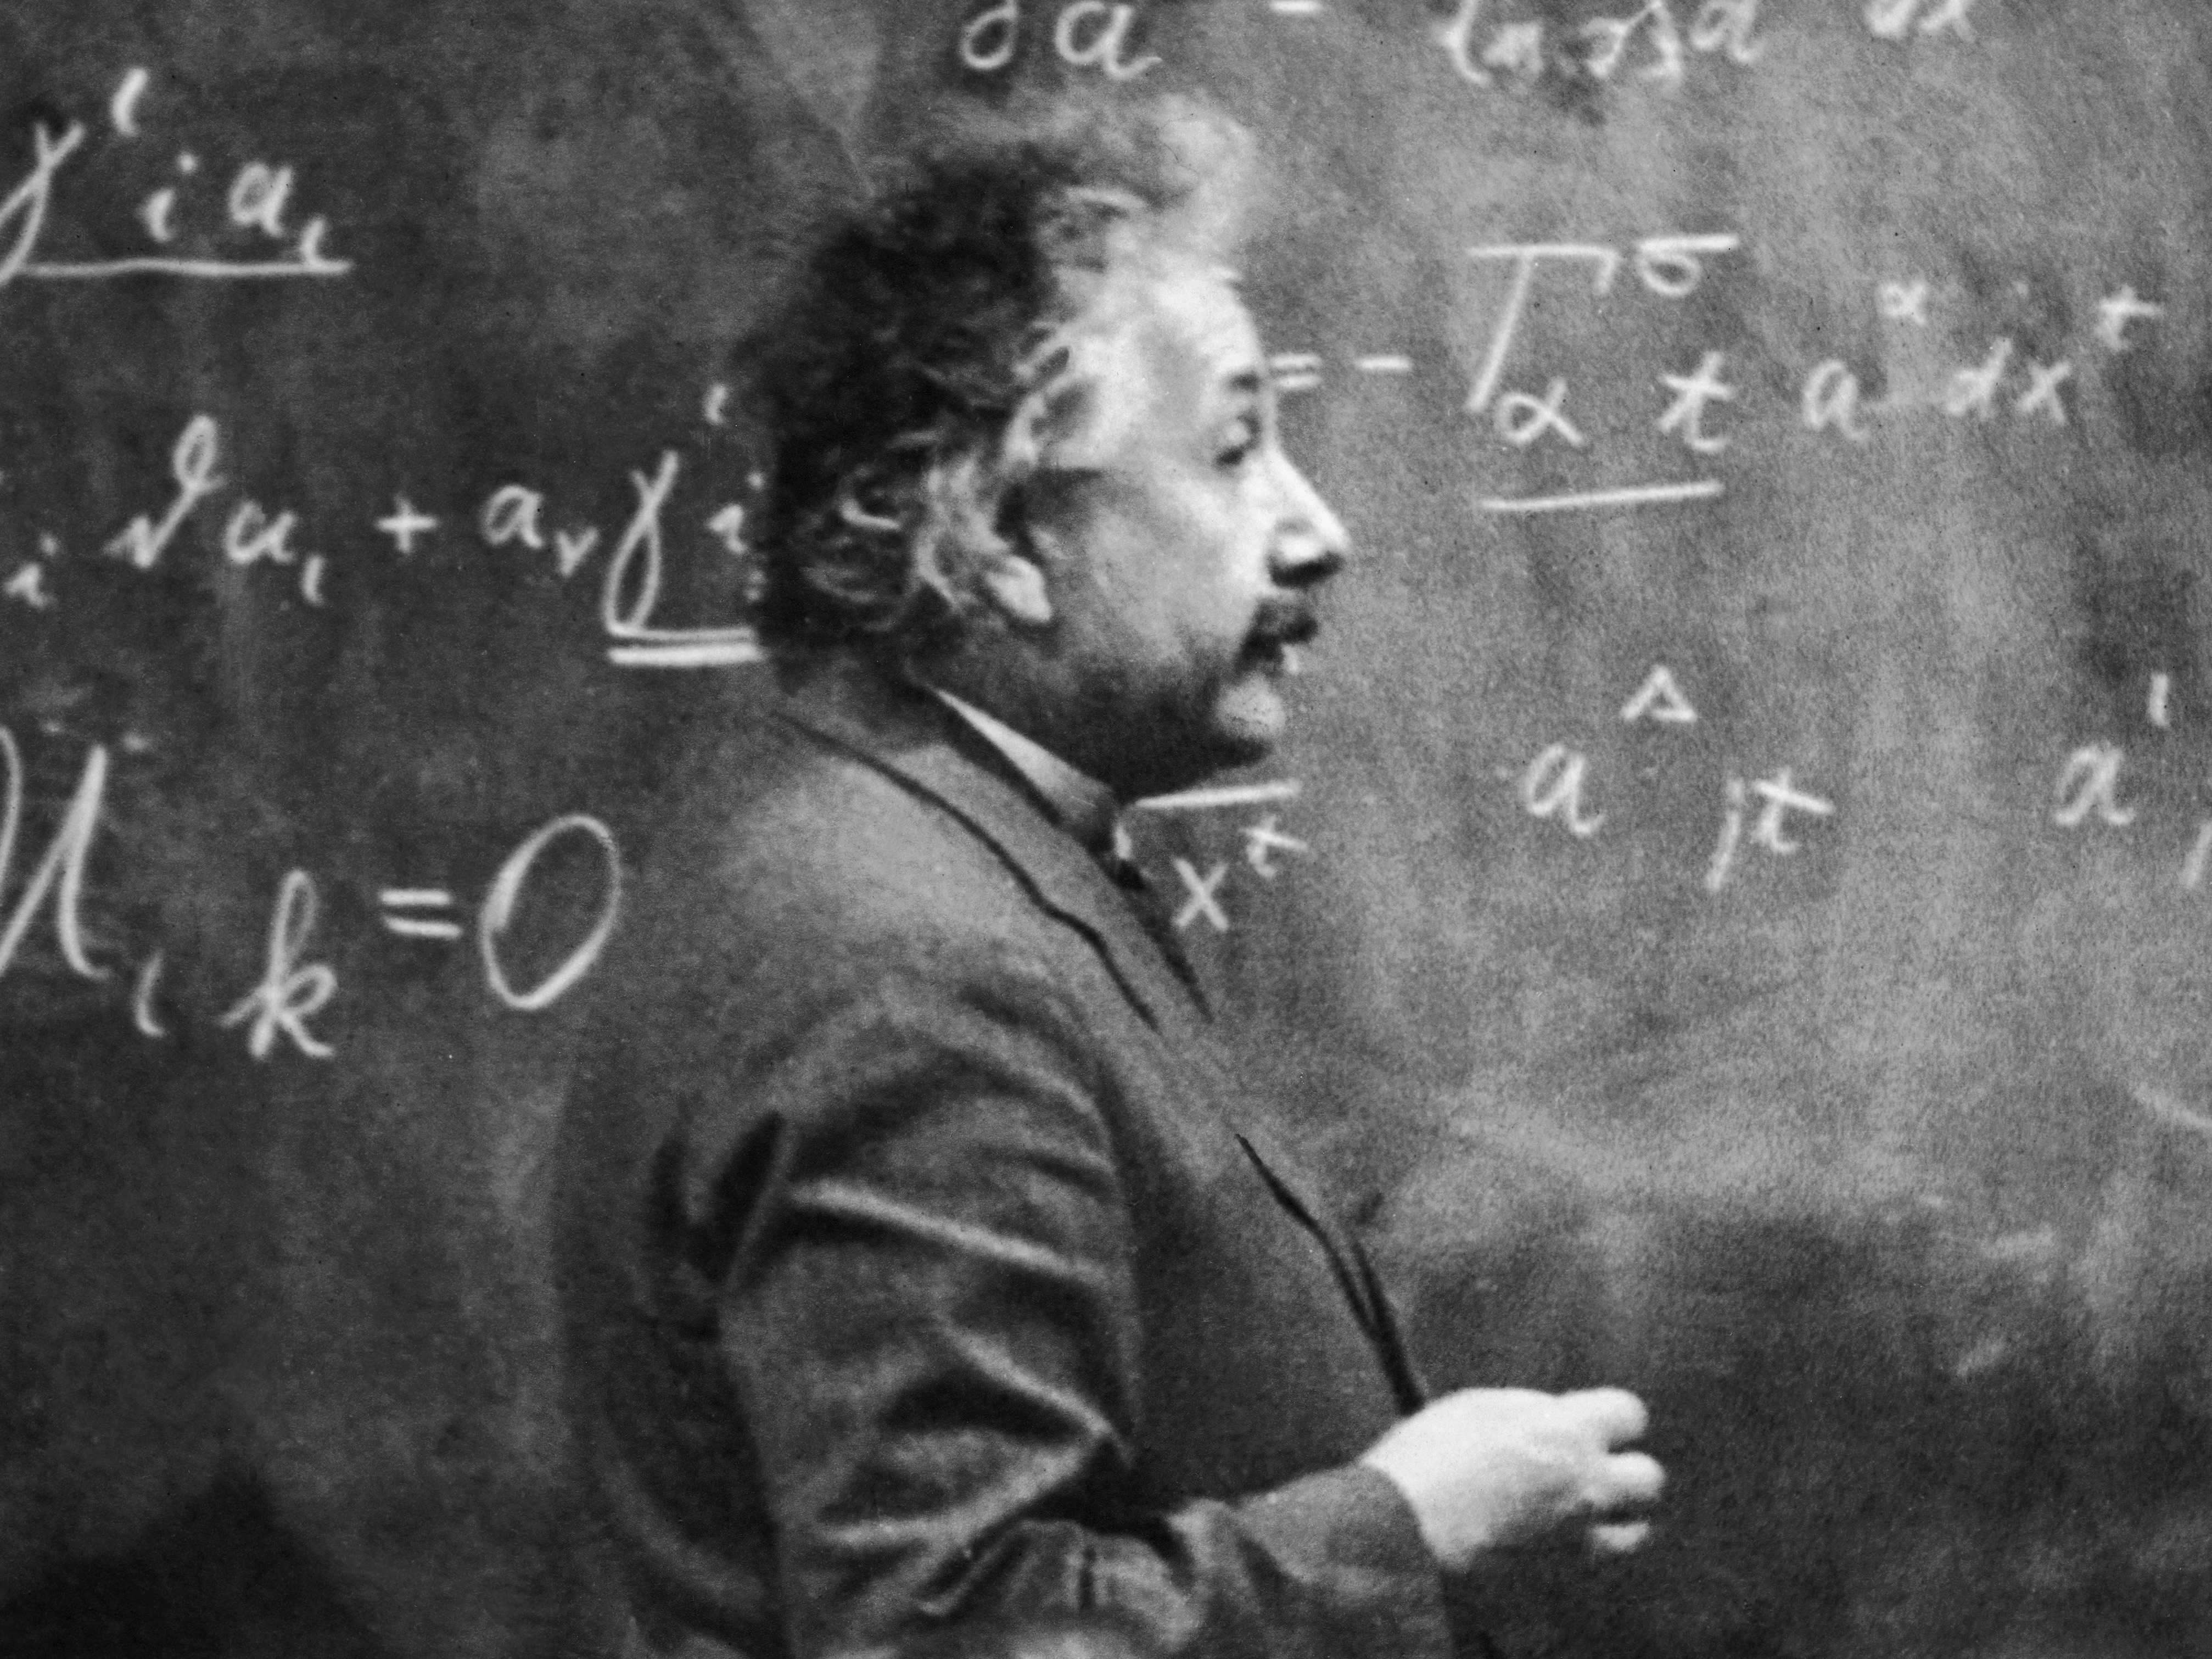 einstein died because he said no to life